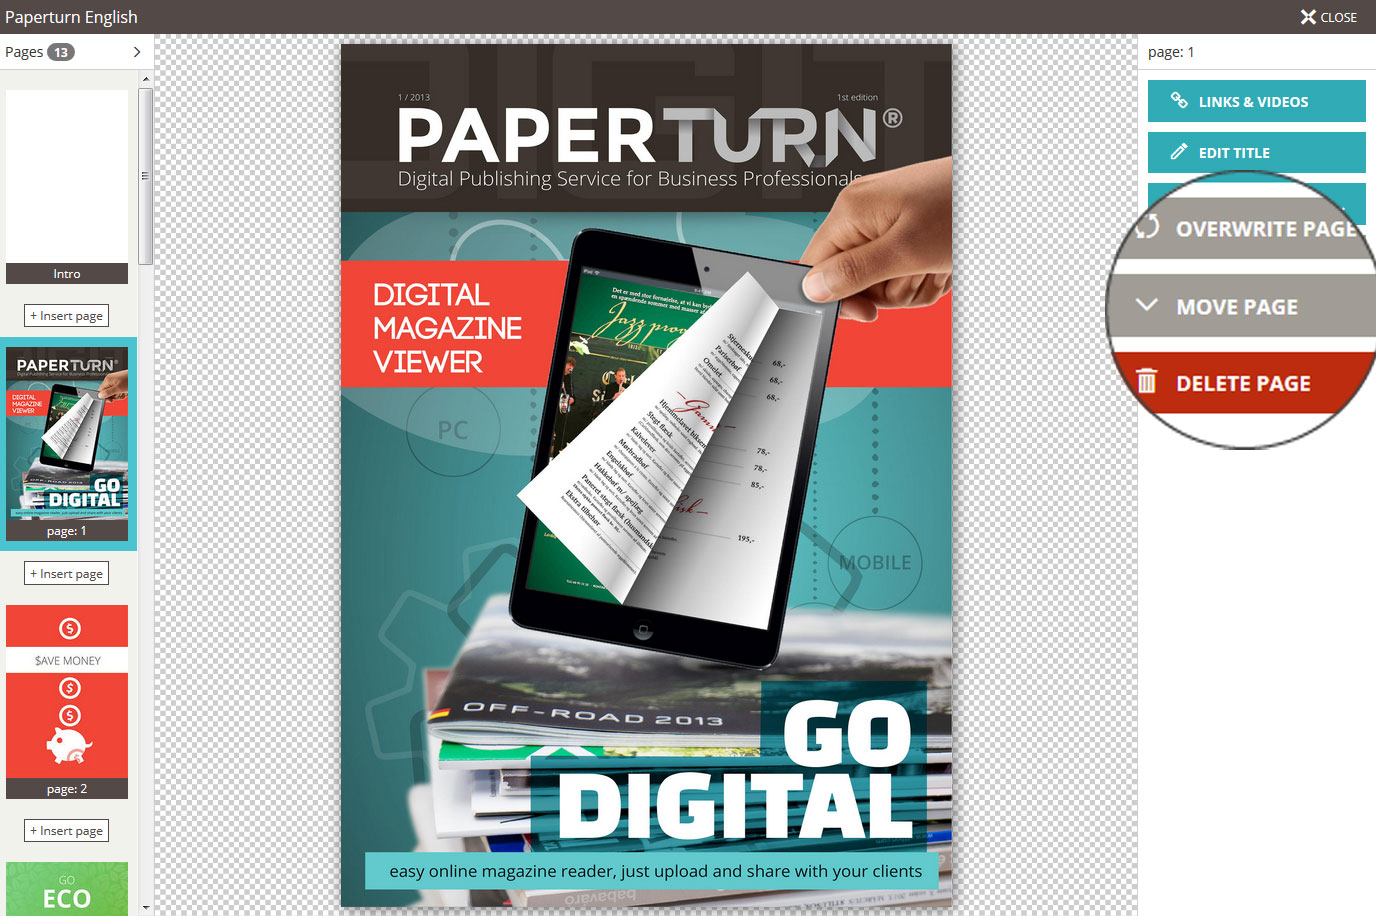 Managing the  pages of the flipbook in Paperturn